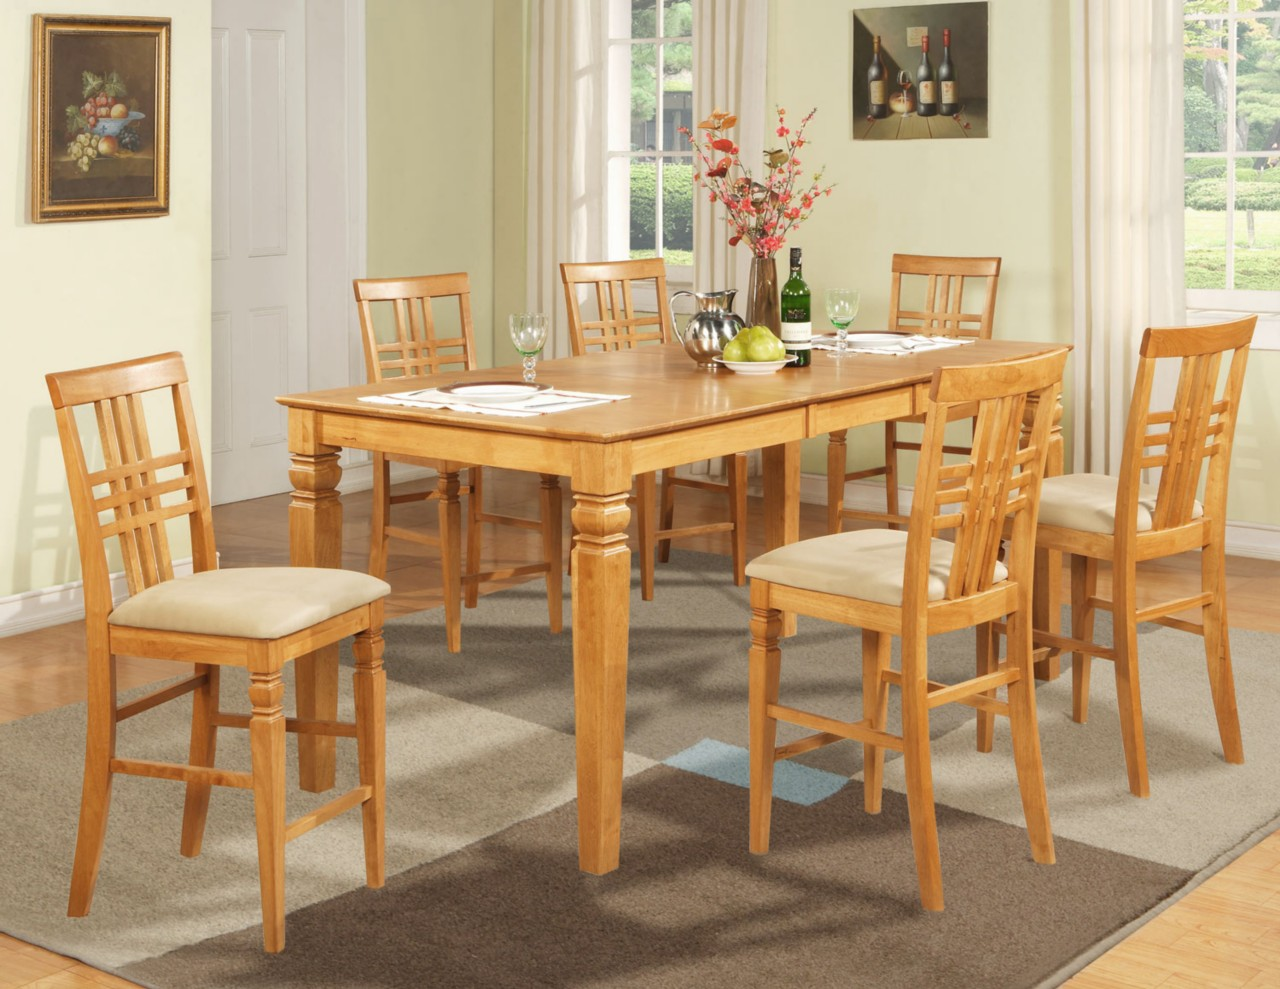 5PC COUNTER HEIGHT DINING ROOM TABLE SET 4 BAR STOOLS EBay